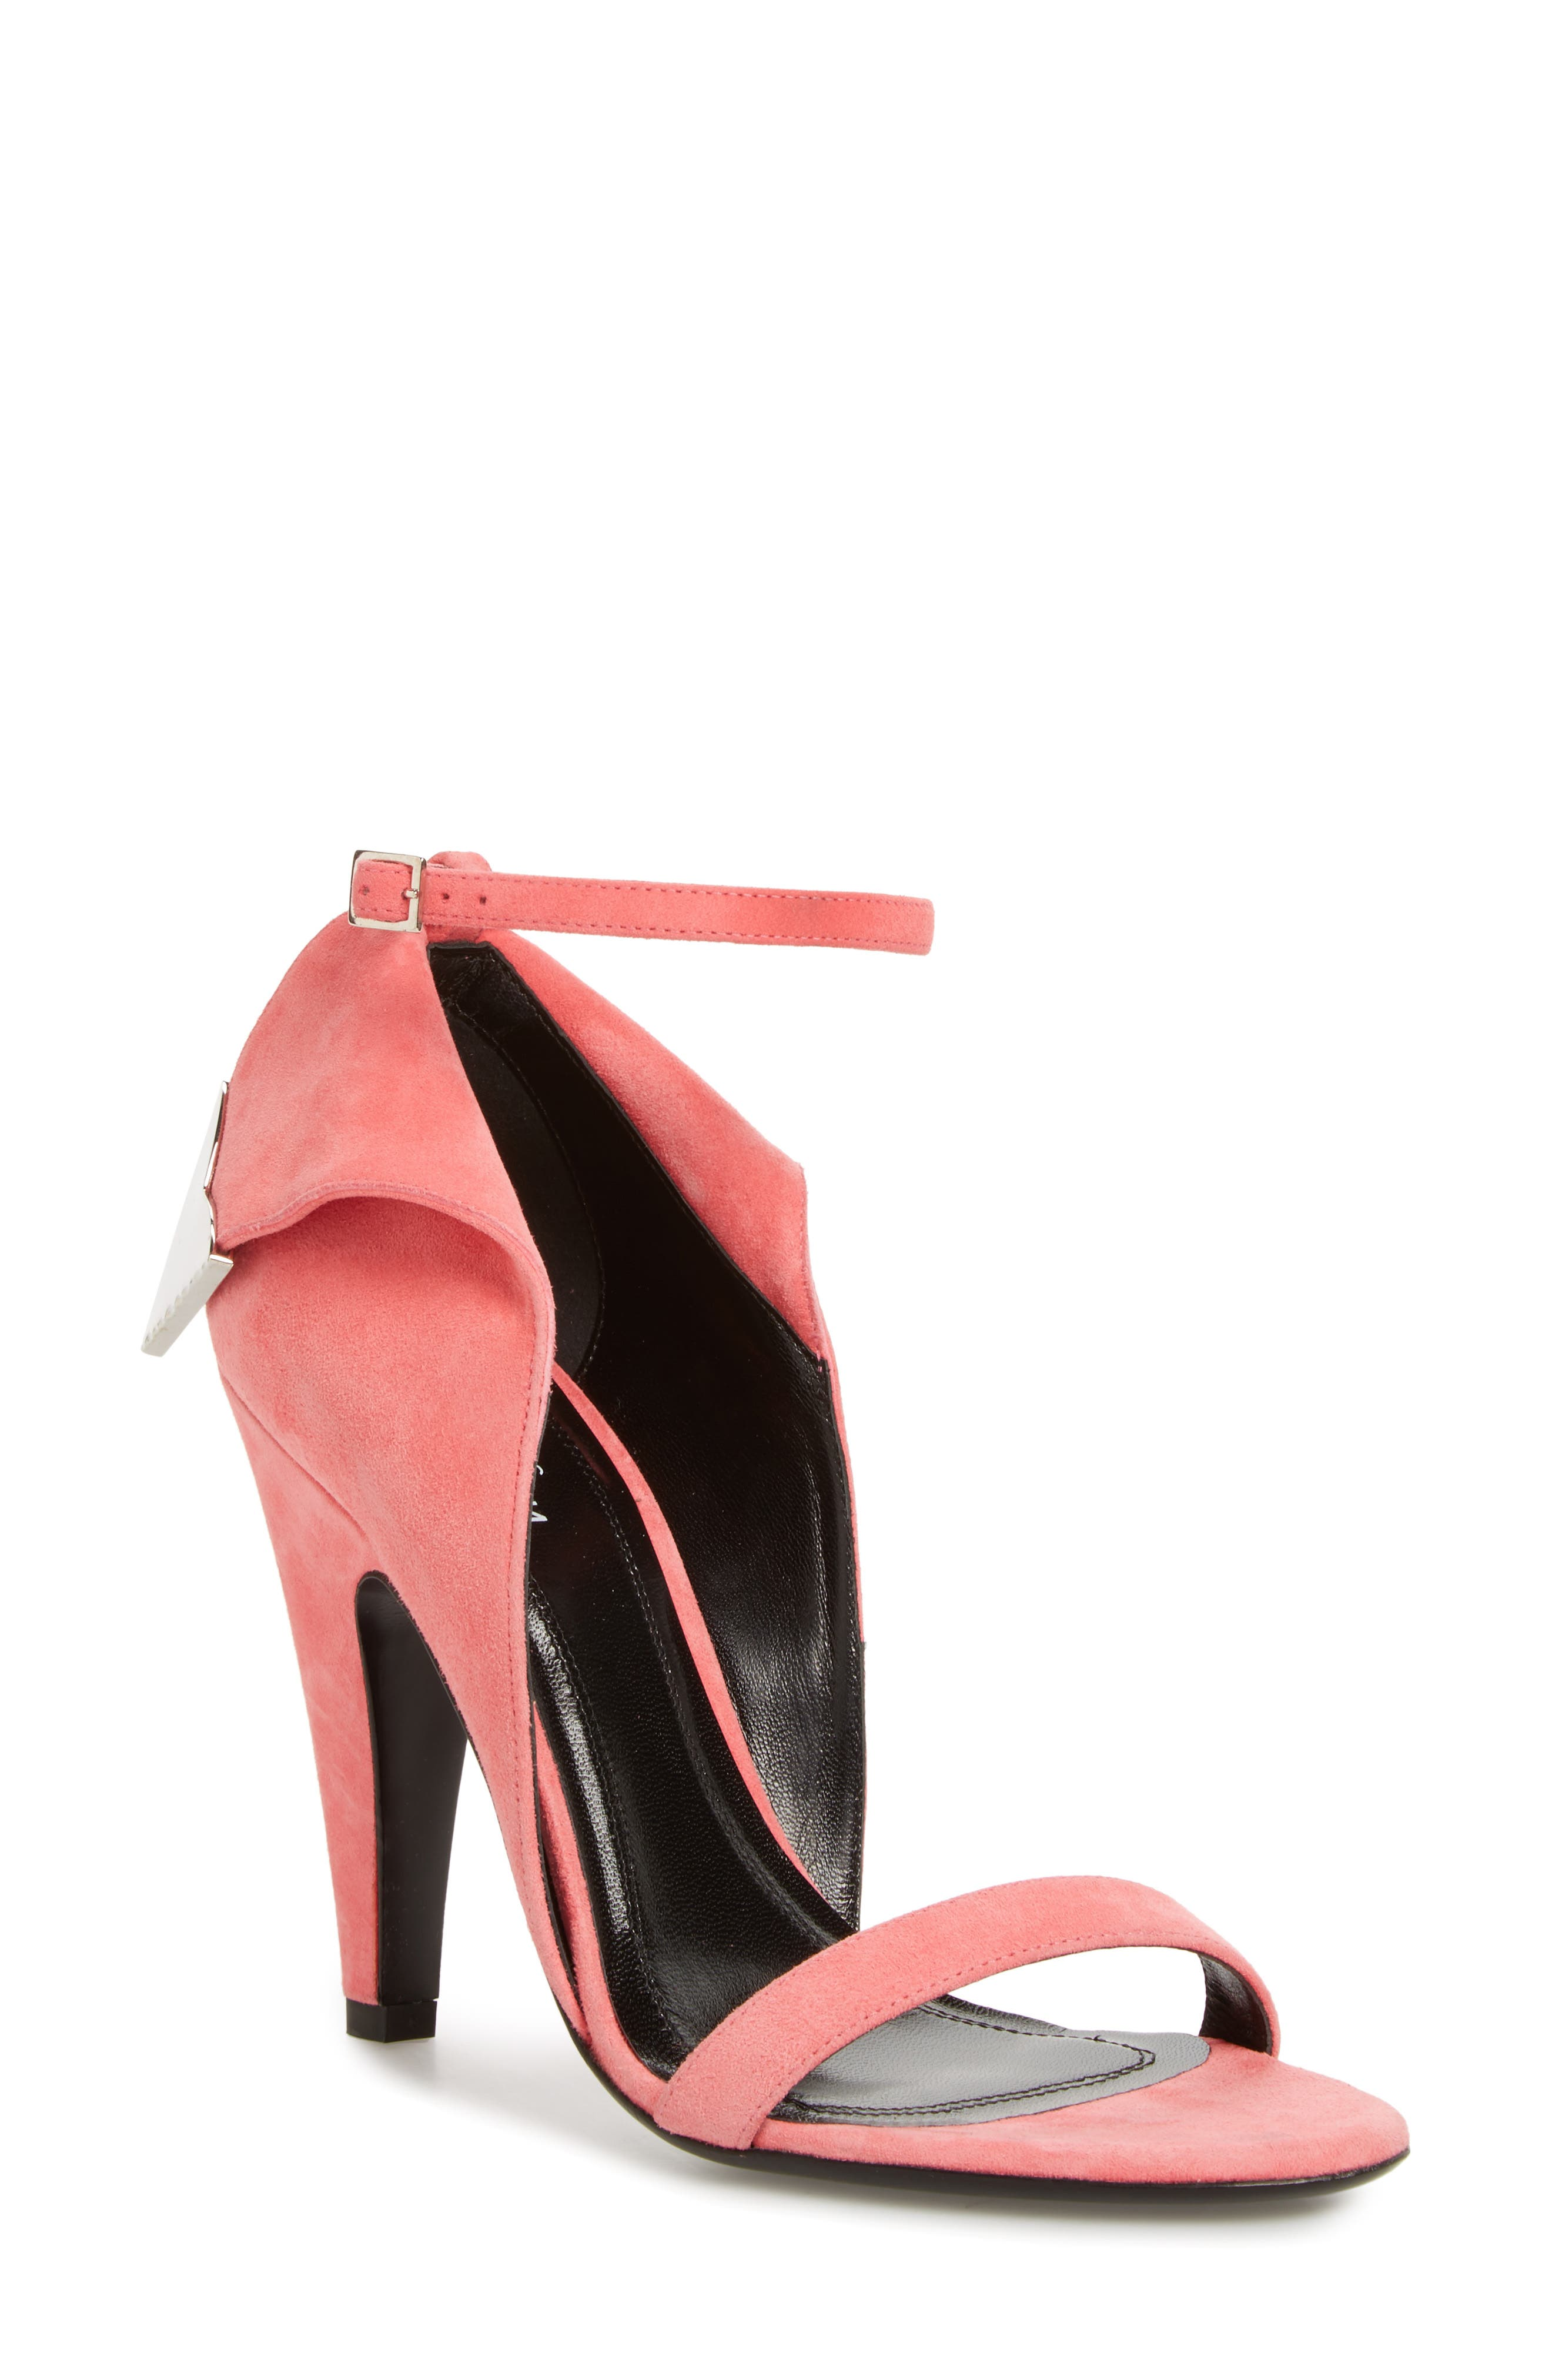 Leititia Ankle Strap Sandal,                         Main,                         color, Blush